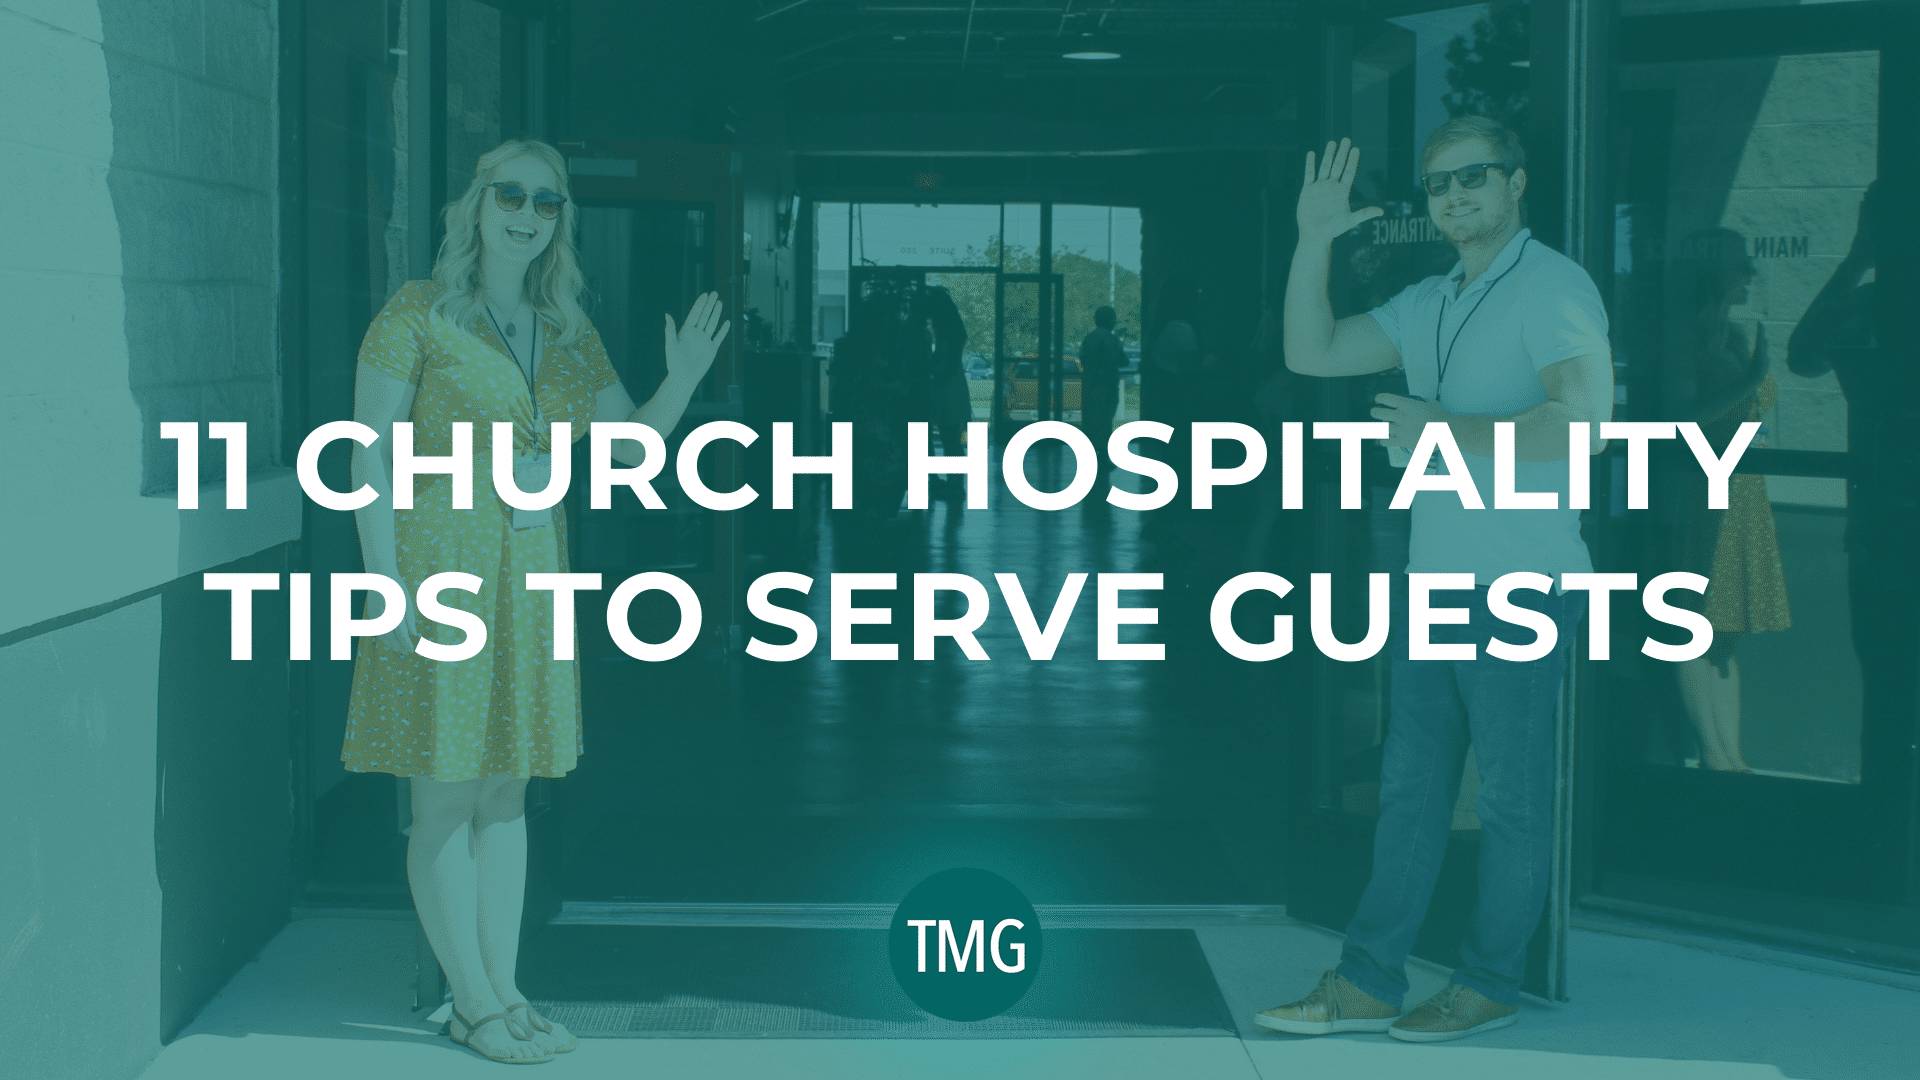 11-church-hospitality-tips-to-serve-guests